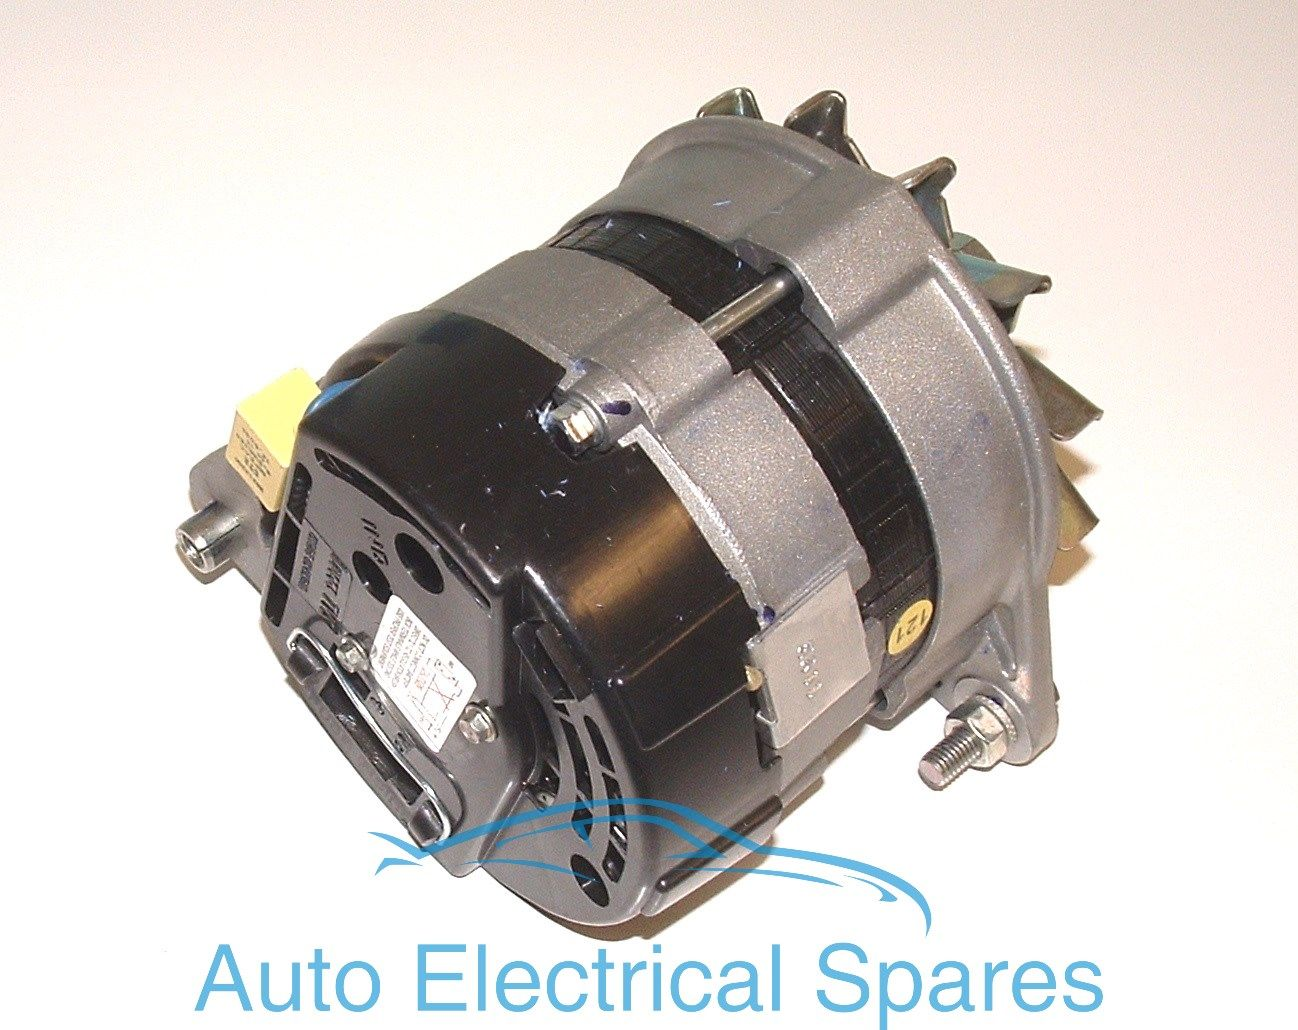 ... 110178 alternator 36a 15acr 16acr 17acr replaces lucas lra100 lra00100  [2] 154 p 110178